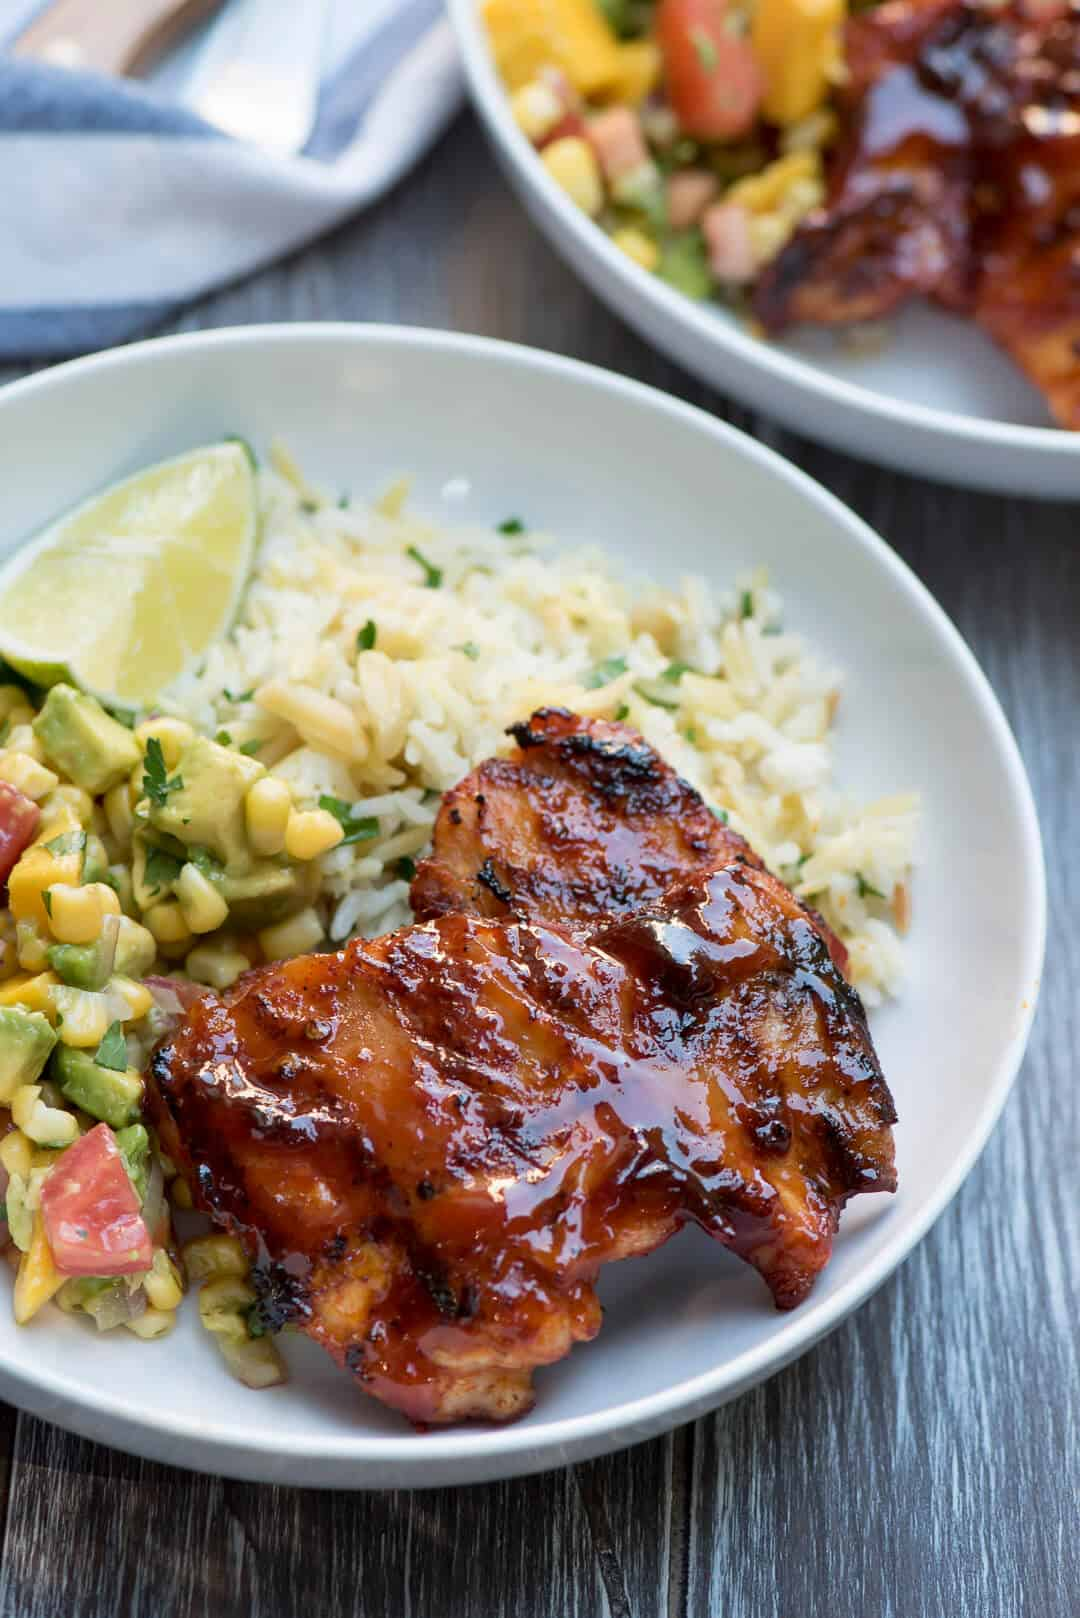 The flavors of smoky chipotle peppers, sweet maple syrup, and bright, fresh lime juice combine in a truly delicious way in this Chipotle Maple Grilled Chicken.